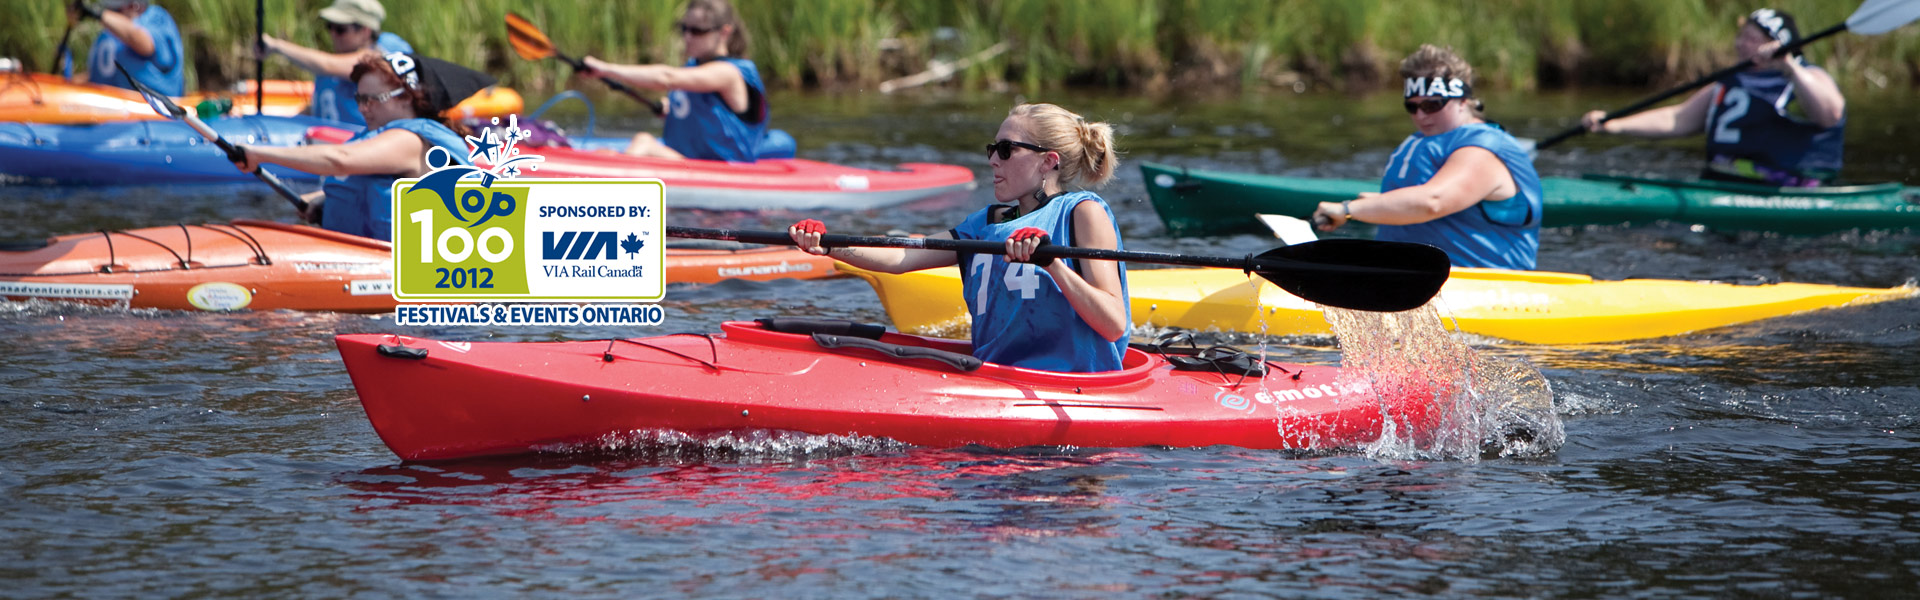 <h2>August 24-25, 2014</h2> Join us for the 5th Annual Great Canadian Kayak Challenge and Festival!